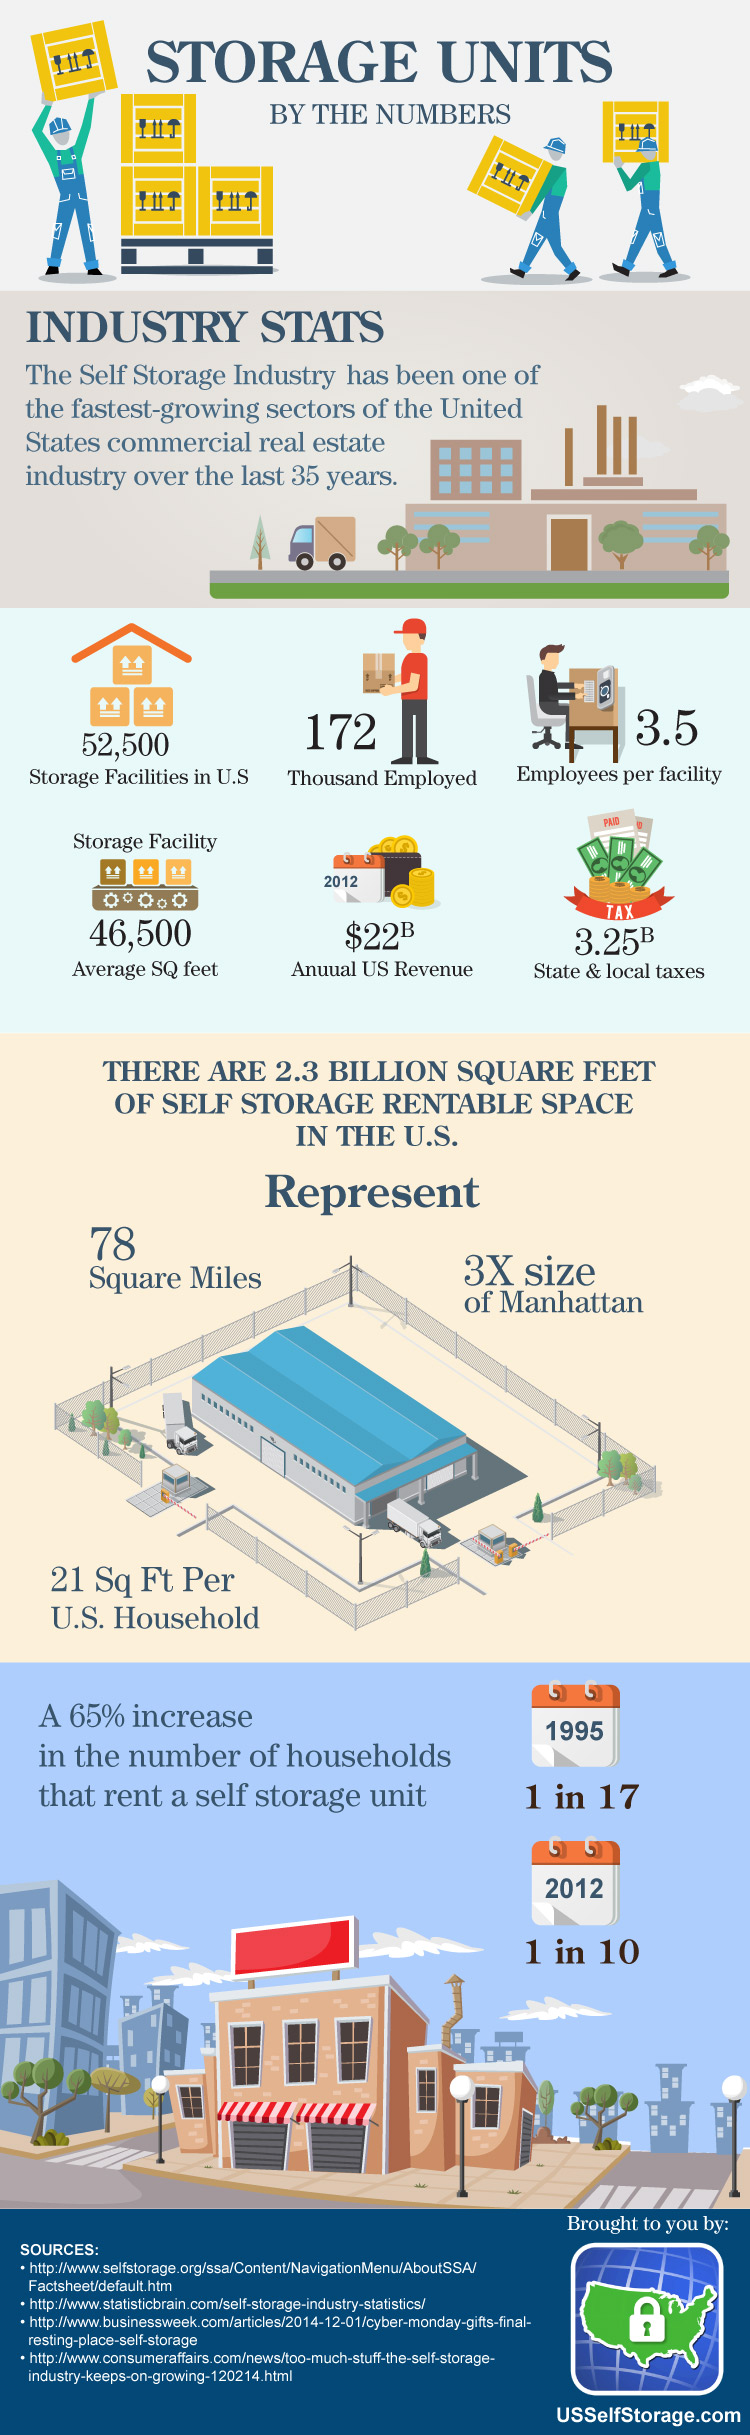 Self Storage Industry by the Numbers Infographic